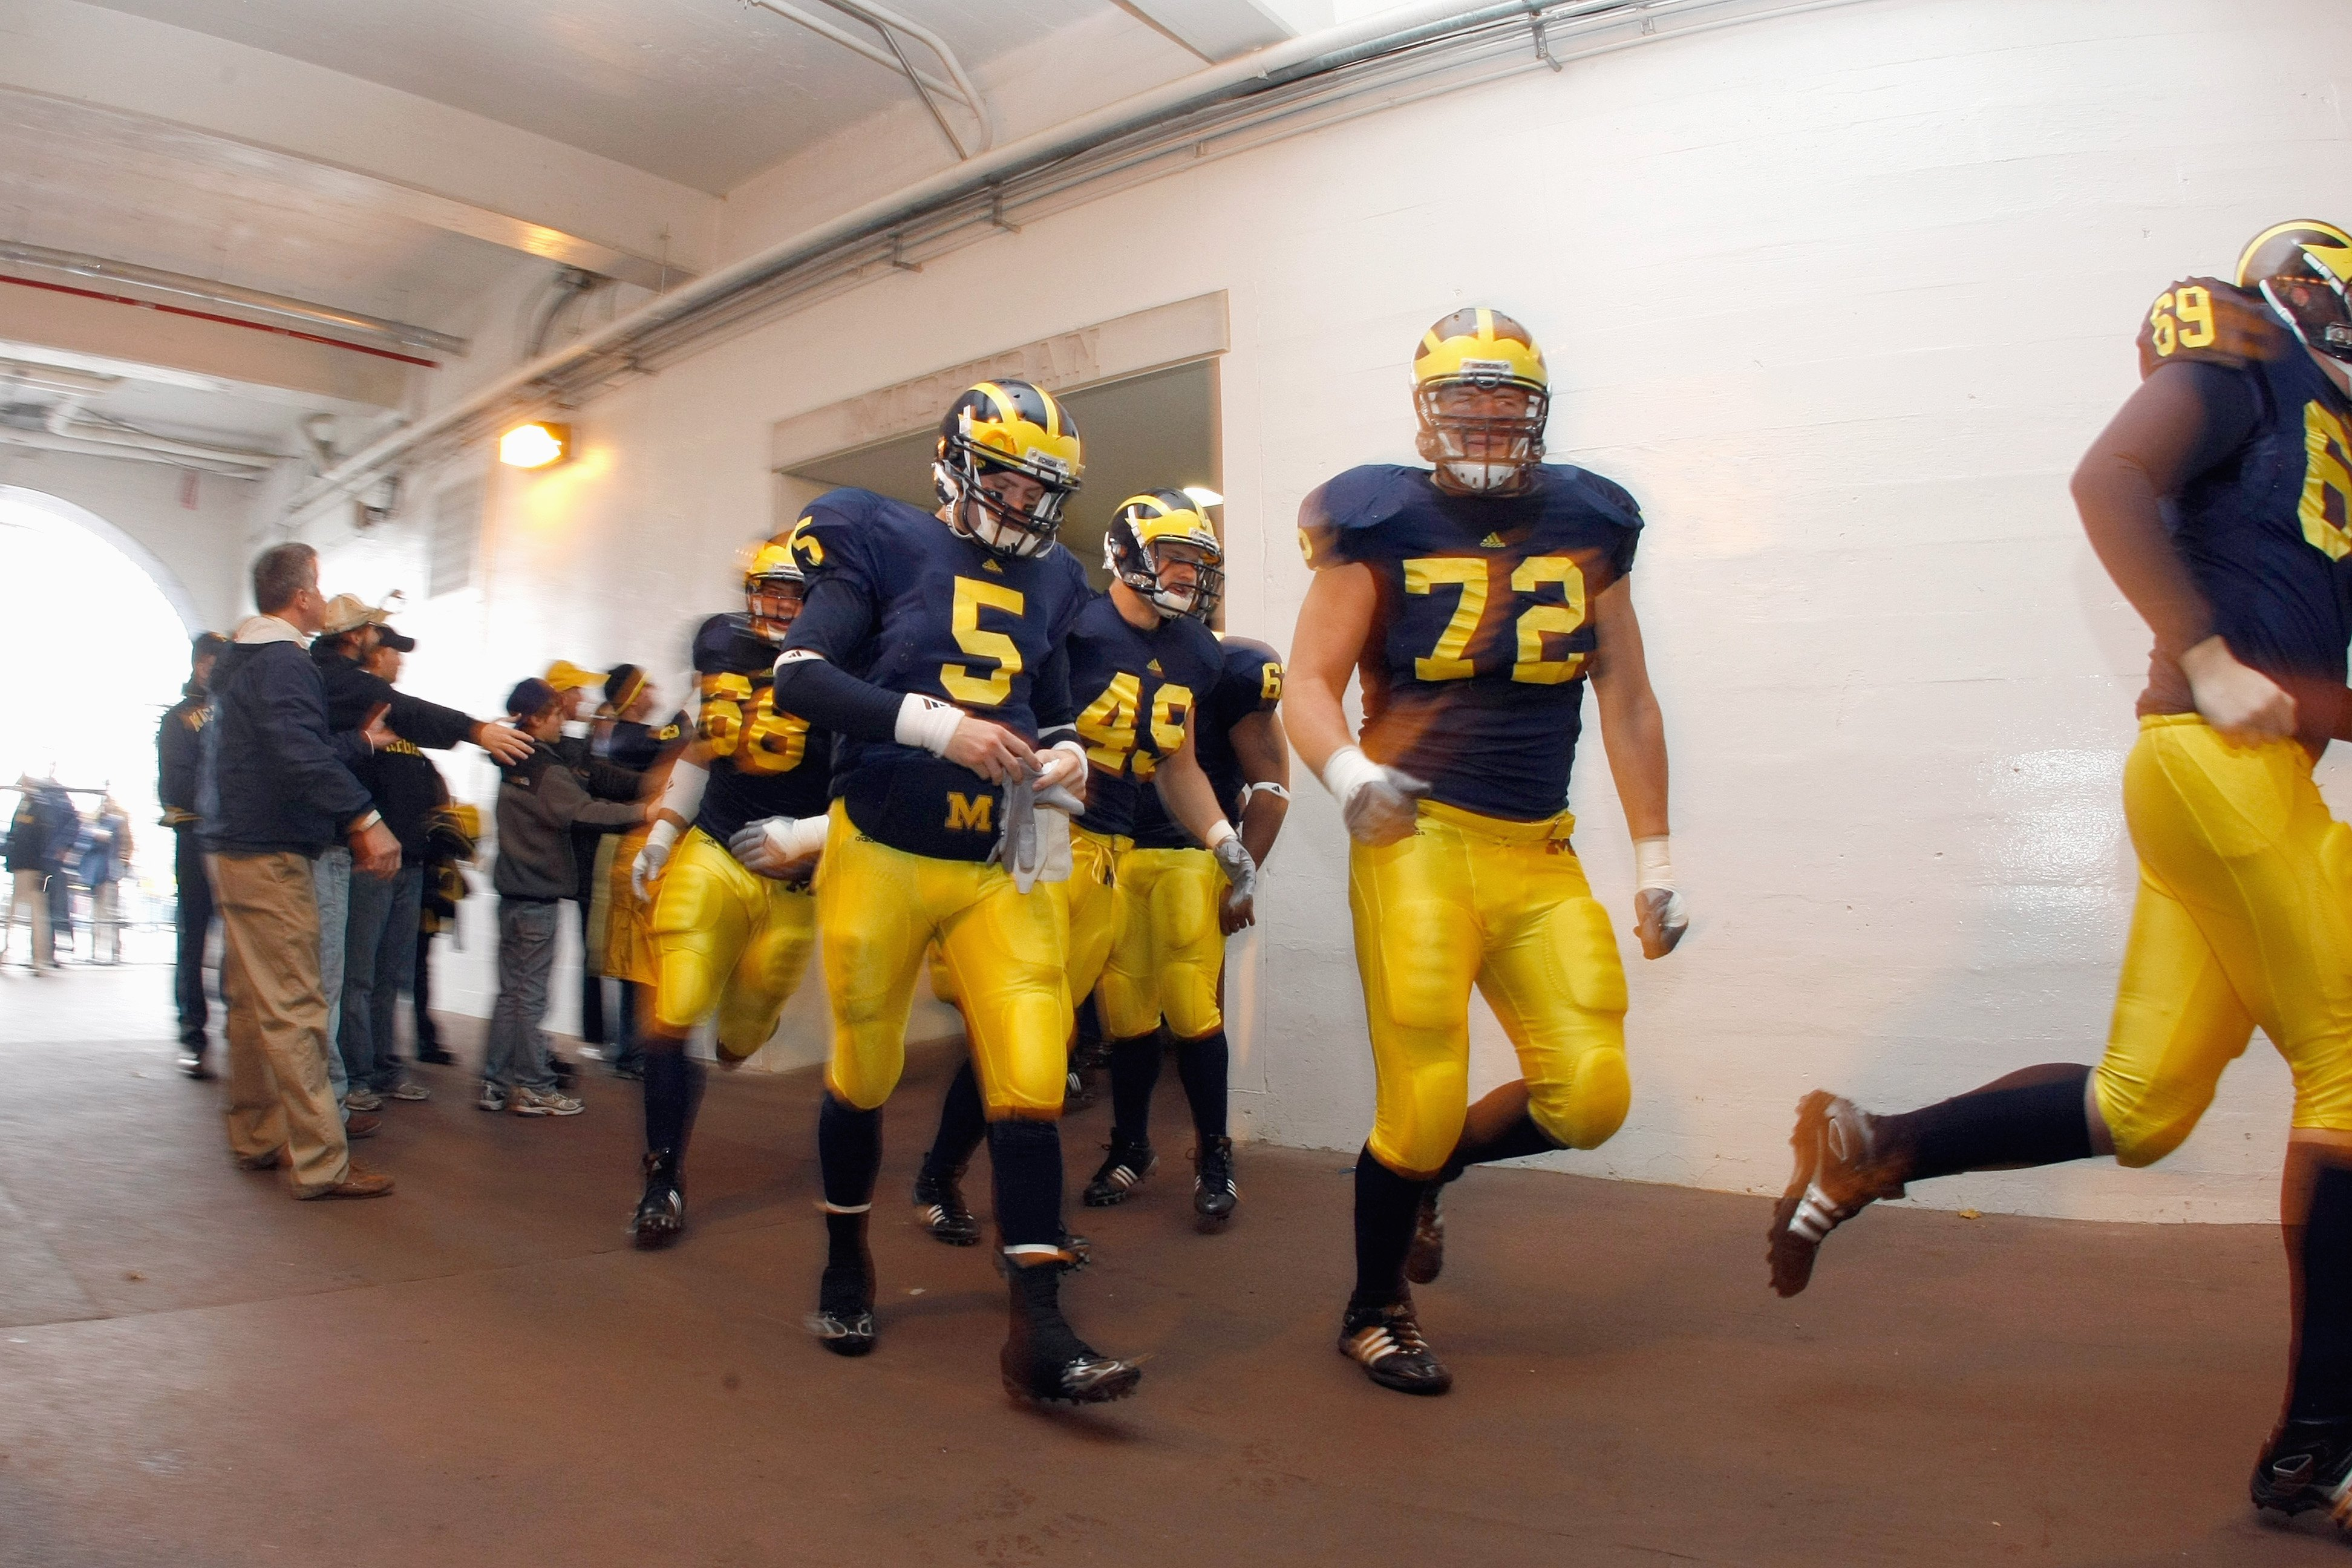 ANN ARBOR, MI - NOVEMBER 21: Quarteback Tate Forcier #5 of the Michigan Wolverines walks through the tunnel before the game against the Ohio State Buckeyes on November 21, 2009 at Michigan Stadium in Ann Arbor, Michigan. Ohio State won the game 21-10. (Ph